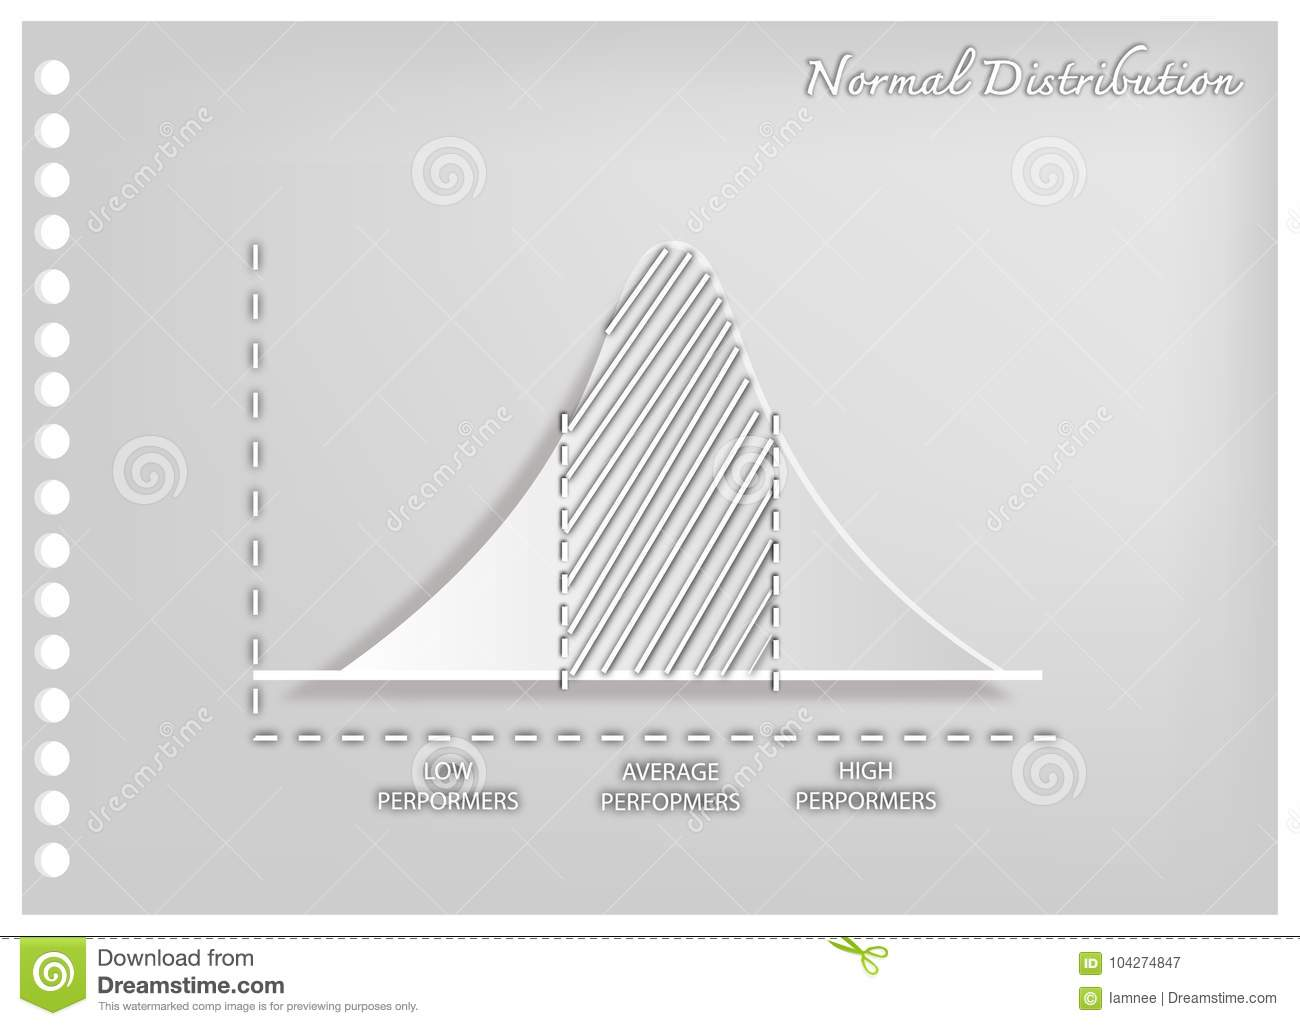 Paper Art Of Normal Distribution Or Gaussian Bell Curve